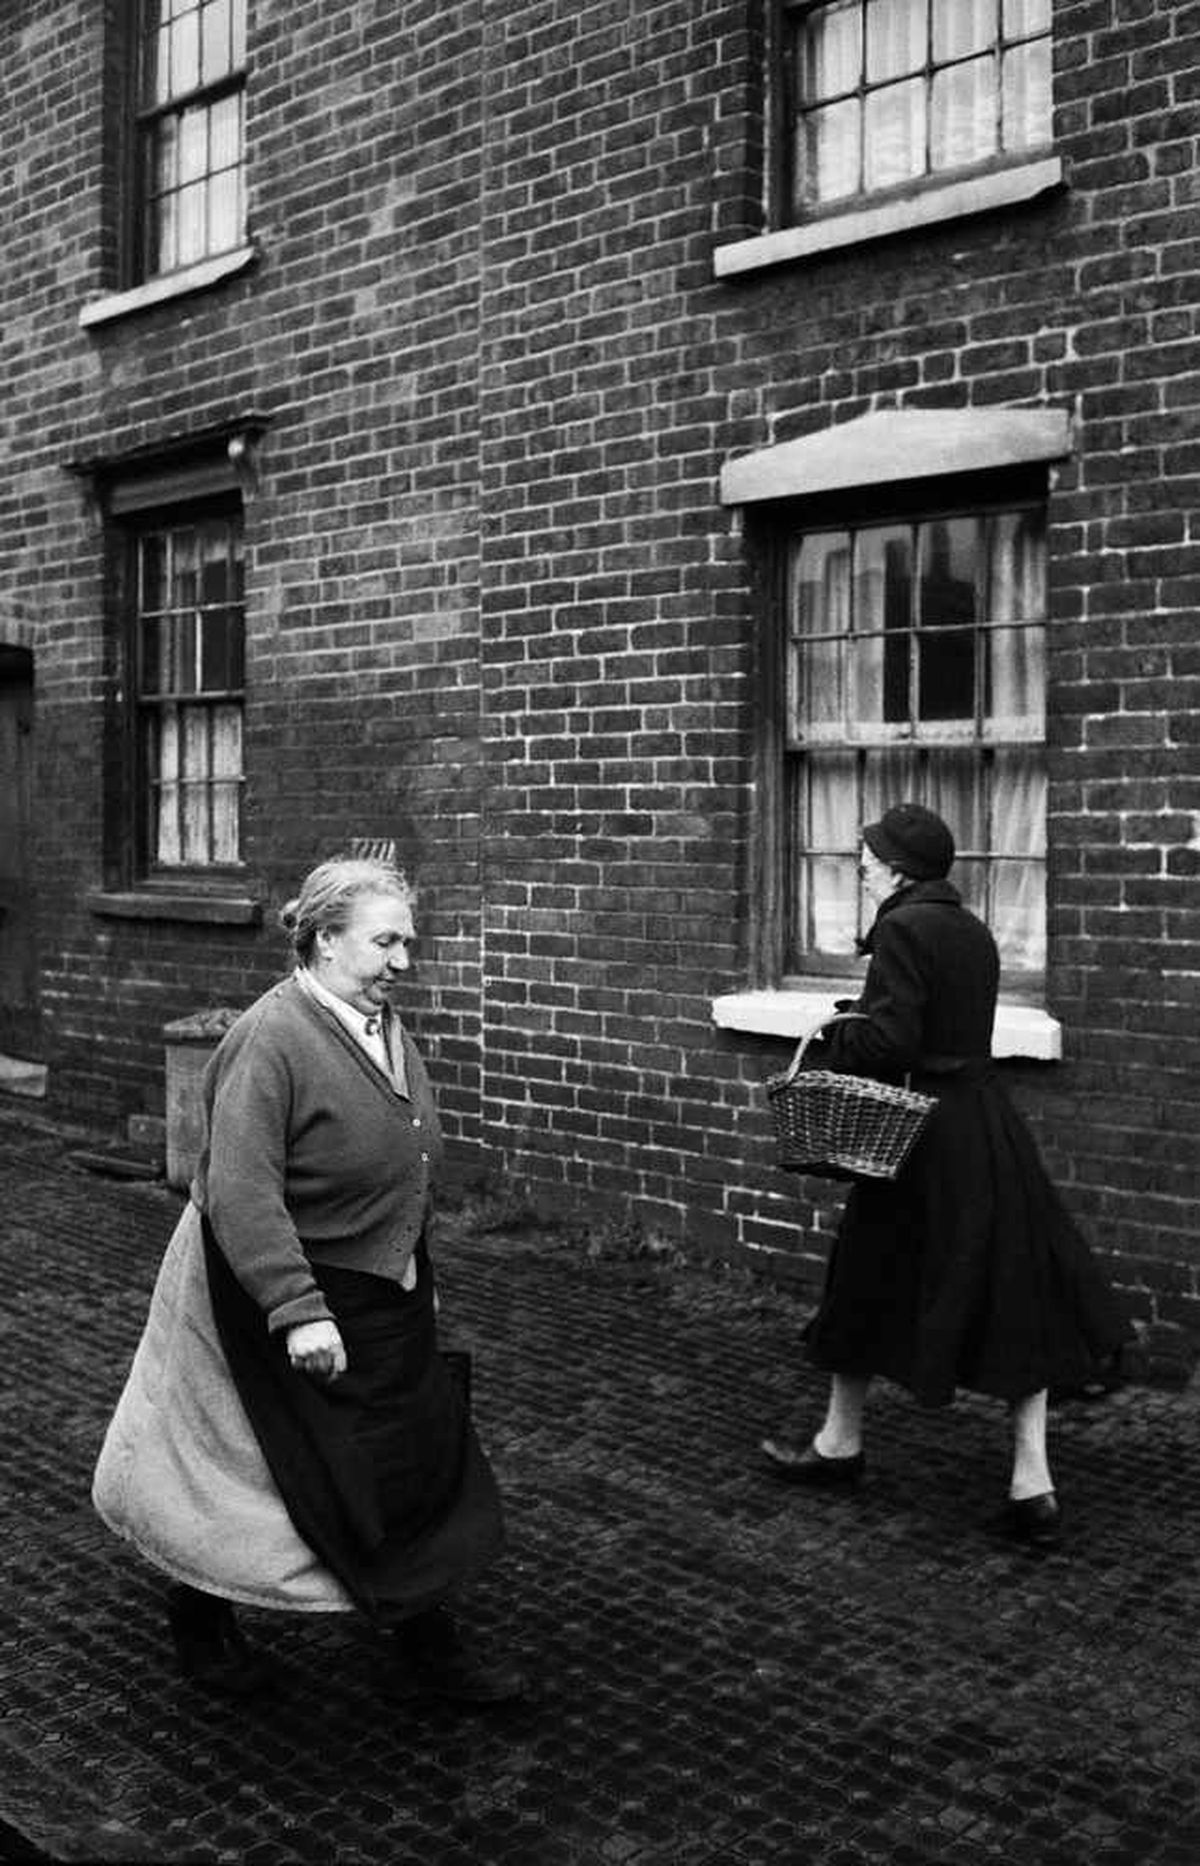 A John Bulmer image from the streets